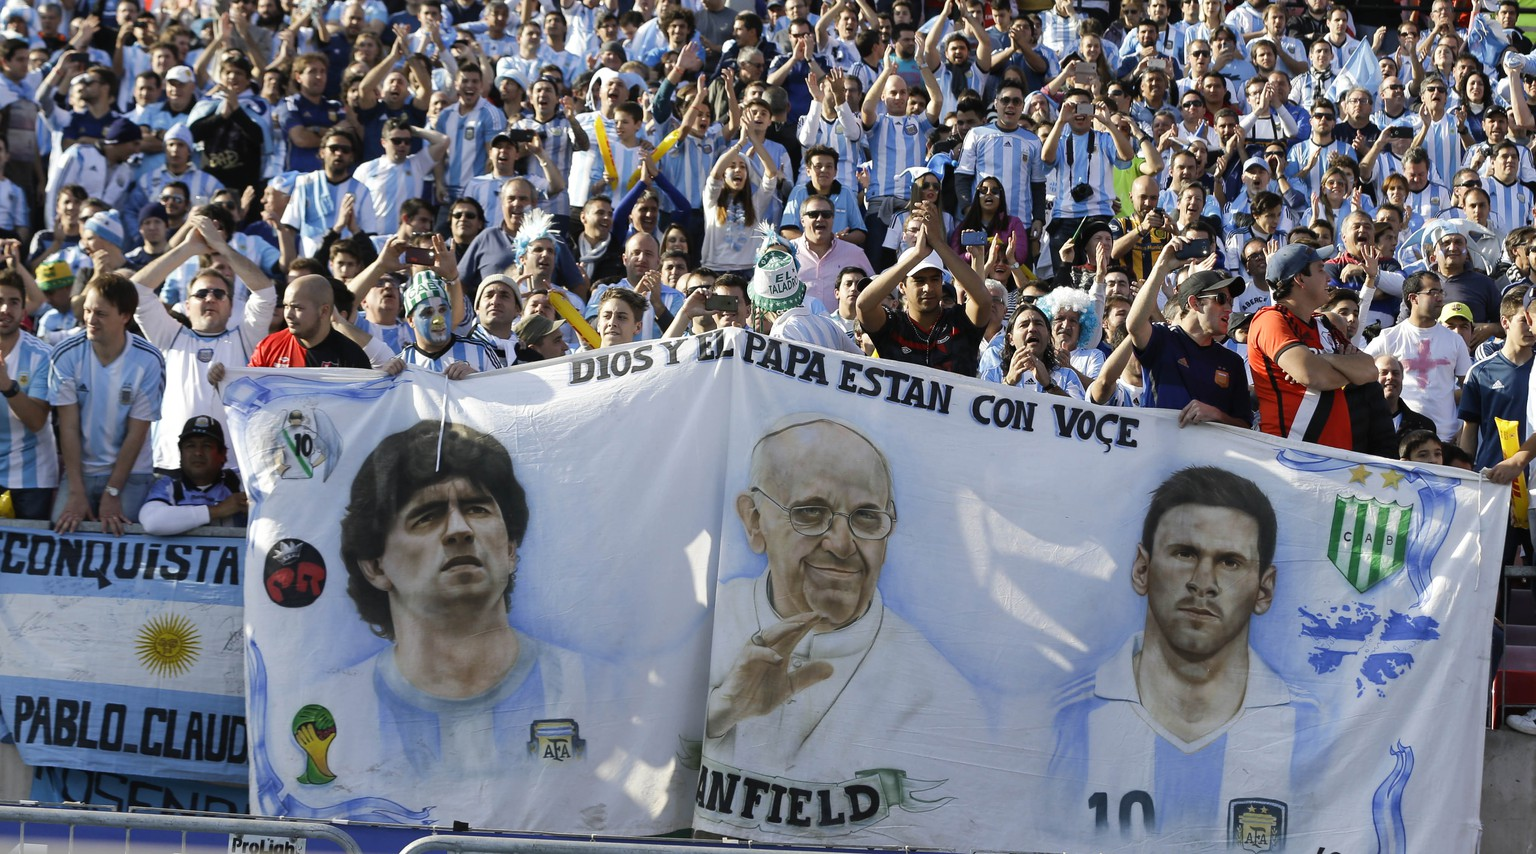 Argentina's fans hold a banner with the images of Argentina's Lionel Messi, right, Pope Francis, center, and Argentina's soccer legend Diego Maradona, during the final Copa America soccer match between Argentina and Chile at the National Stadium in Santiago, Chile, Saturday, July 4, 2015. (AP Photo/Ricardo Mazalan)